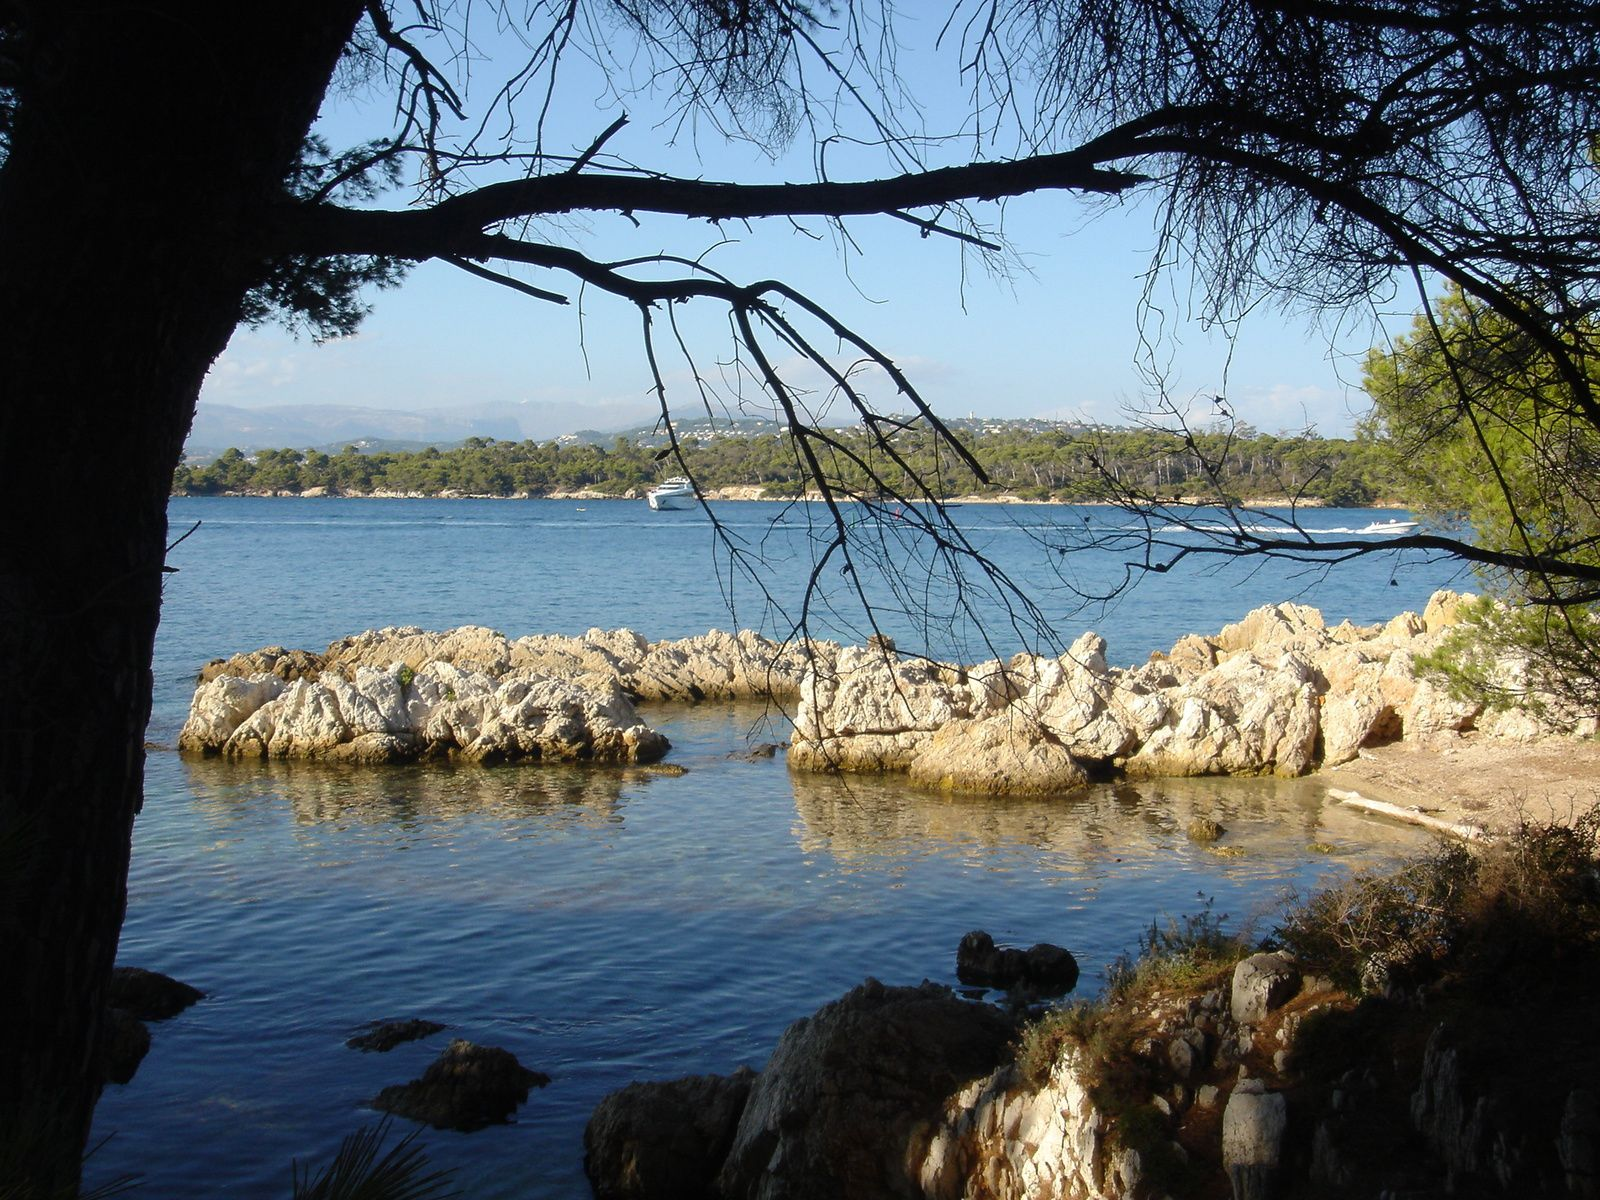 Sur l'Ile Saint-Honorat, en face l'Ile Sainte-Marguerite.